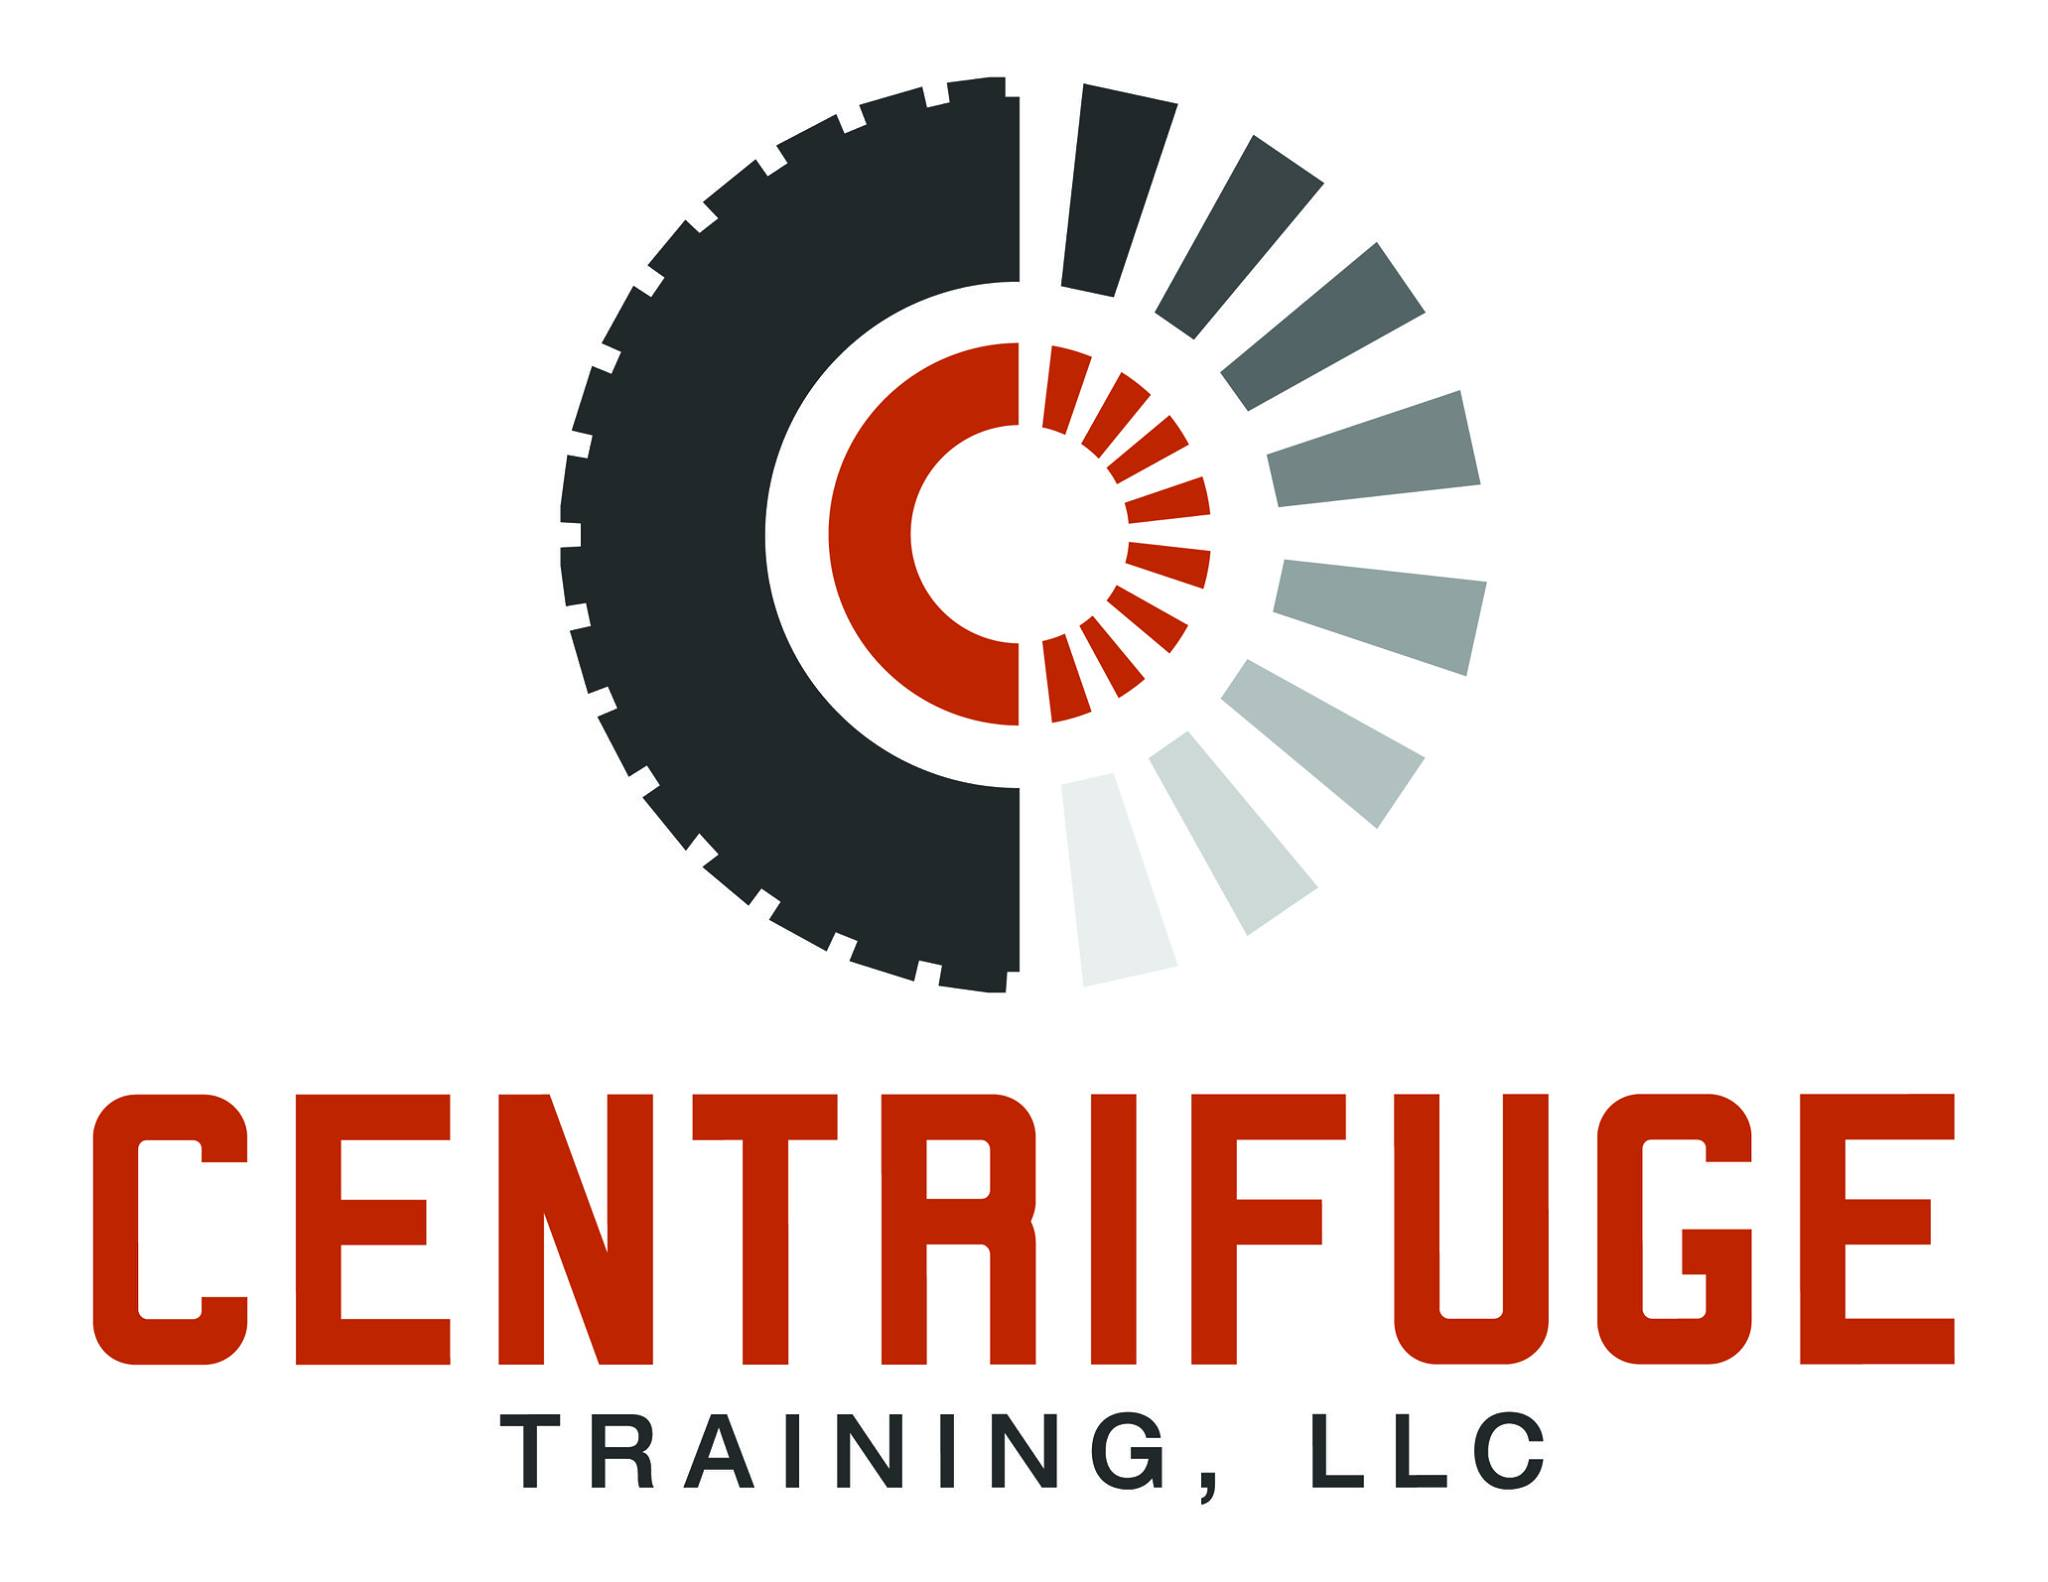 Centrifuge Training, LLC